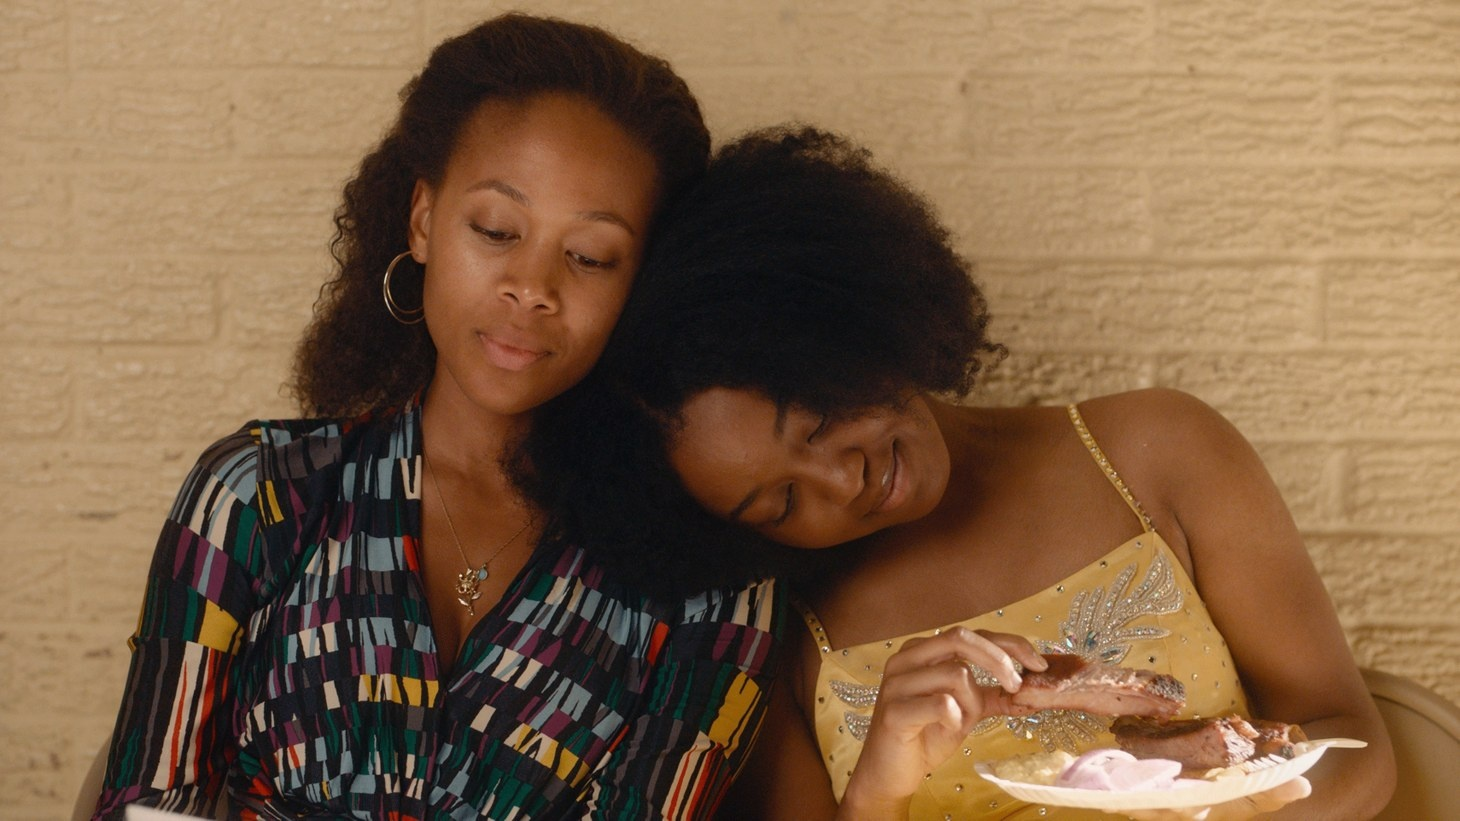 """Nicole Beharie (left) as Turquoise and Alexis Chikaeze (right) as Kai in """"Miss Juneteenth."""" The coming-of-age drama was directed by Channing Godfrey Peoples and produced by Neil Creque Williams."""